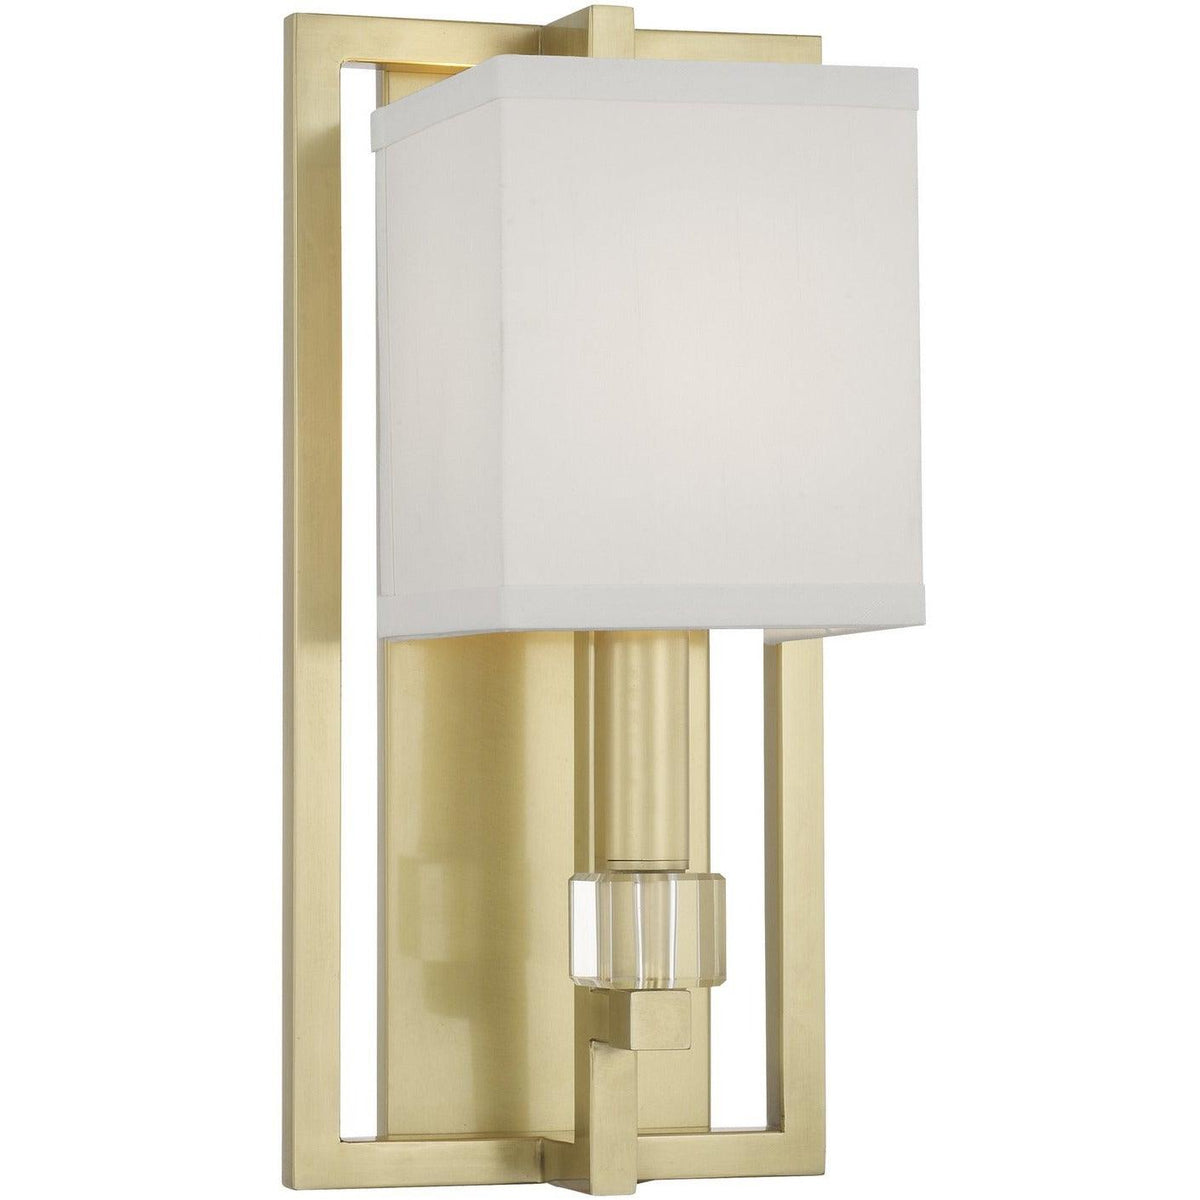 Crystorama - 8881-AG - One Light Wall Mount - Dixon - Aged Brass